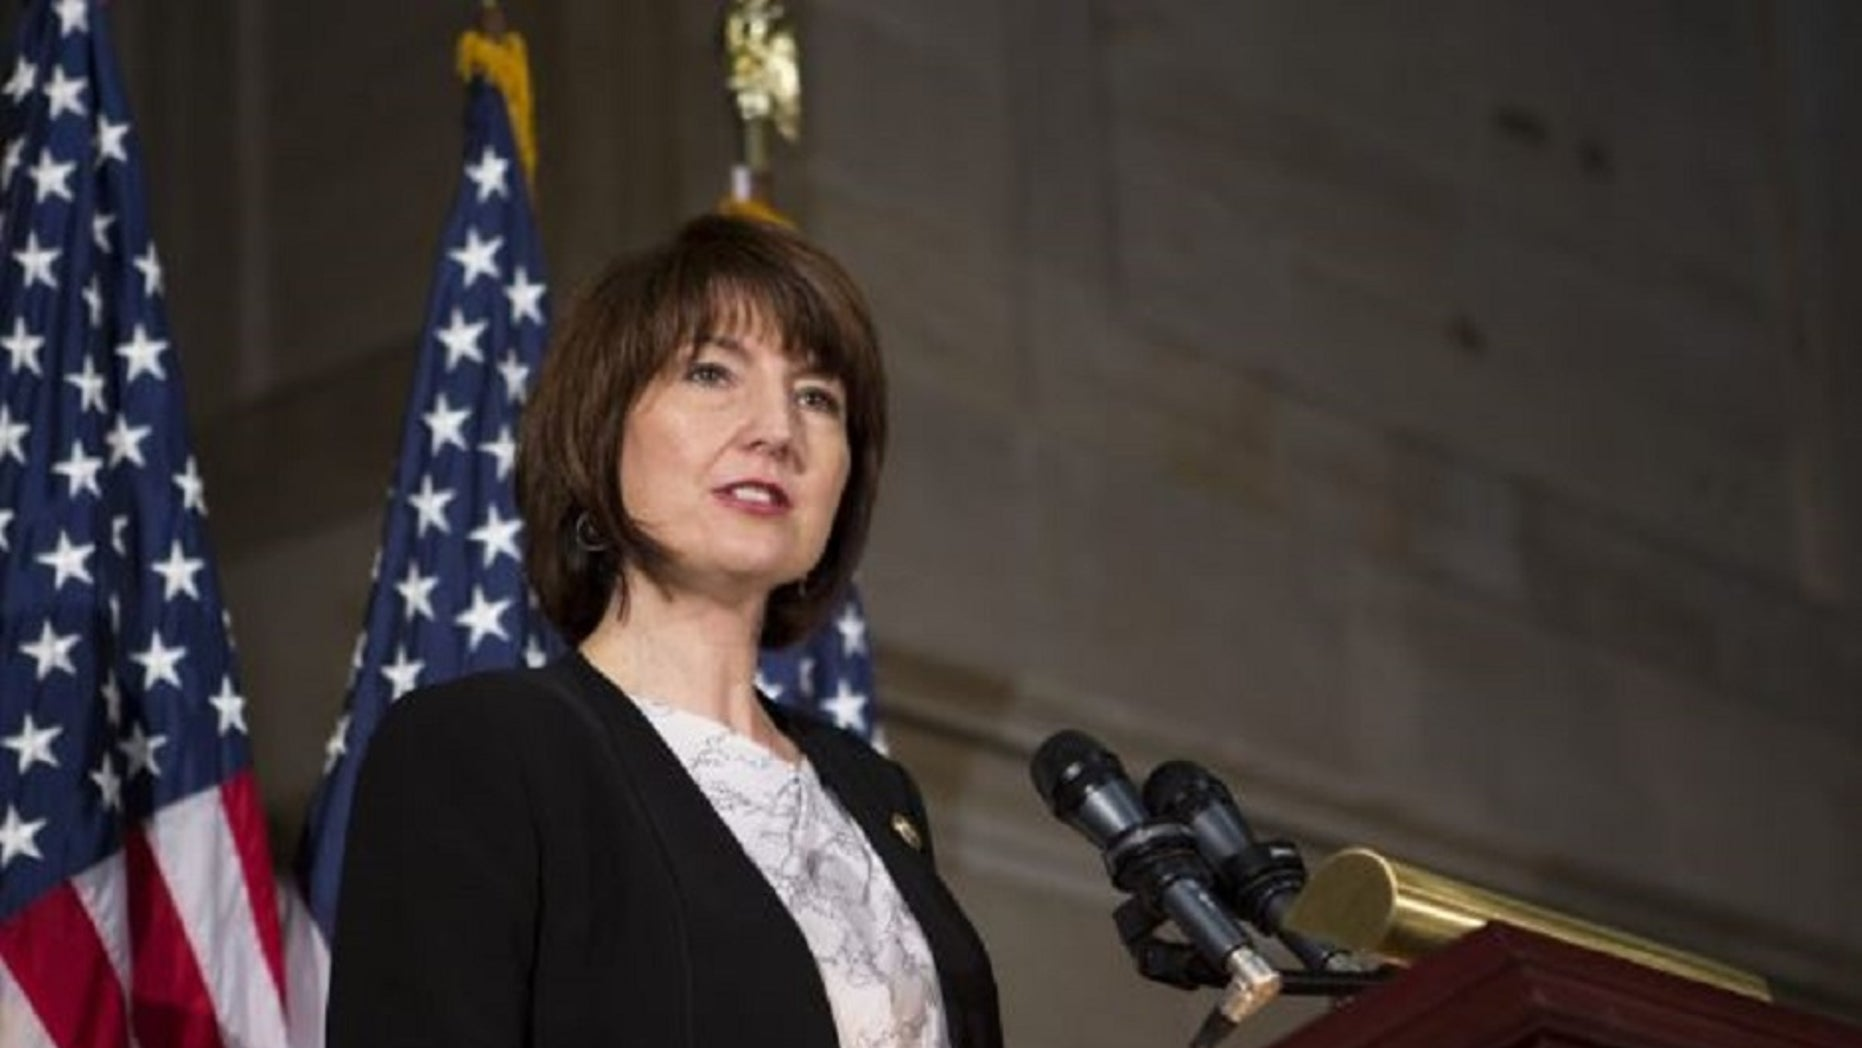 Rep. Cathy McMorris Rodgers, R-Wash., raised concerns Thursday about possible unintended consequences of a national emergency declaration by President Trump. (Rodgers website)